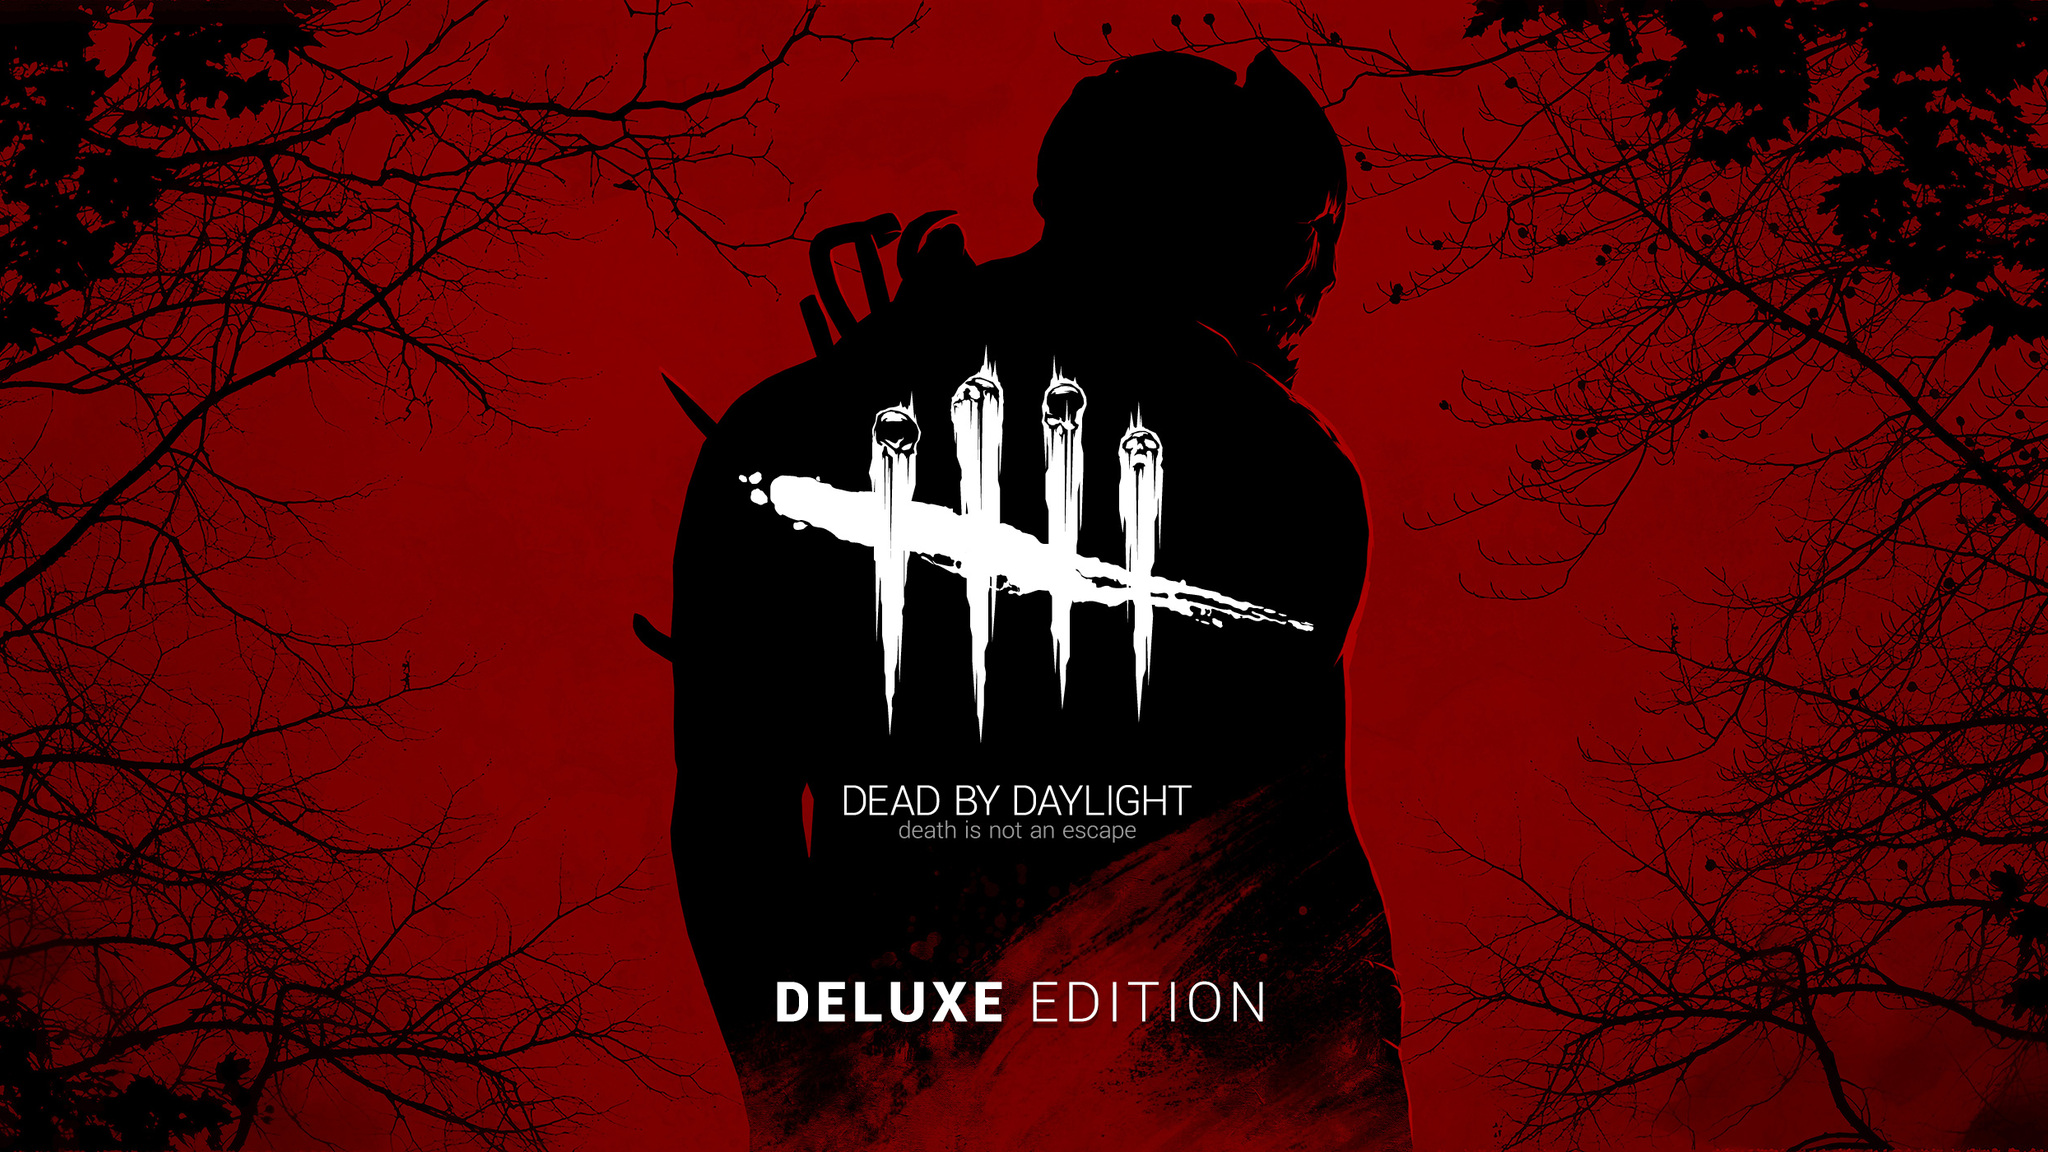 2048x1152 Dead By Daylight Deluxe Edition 2048x1152 ...